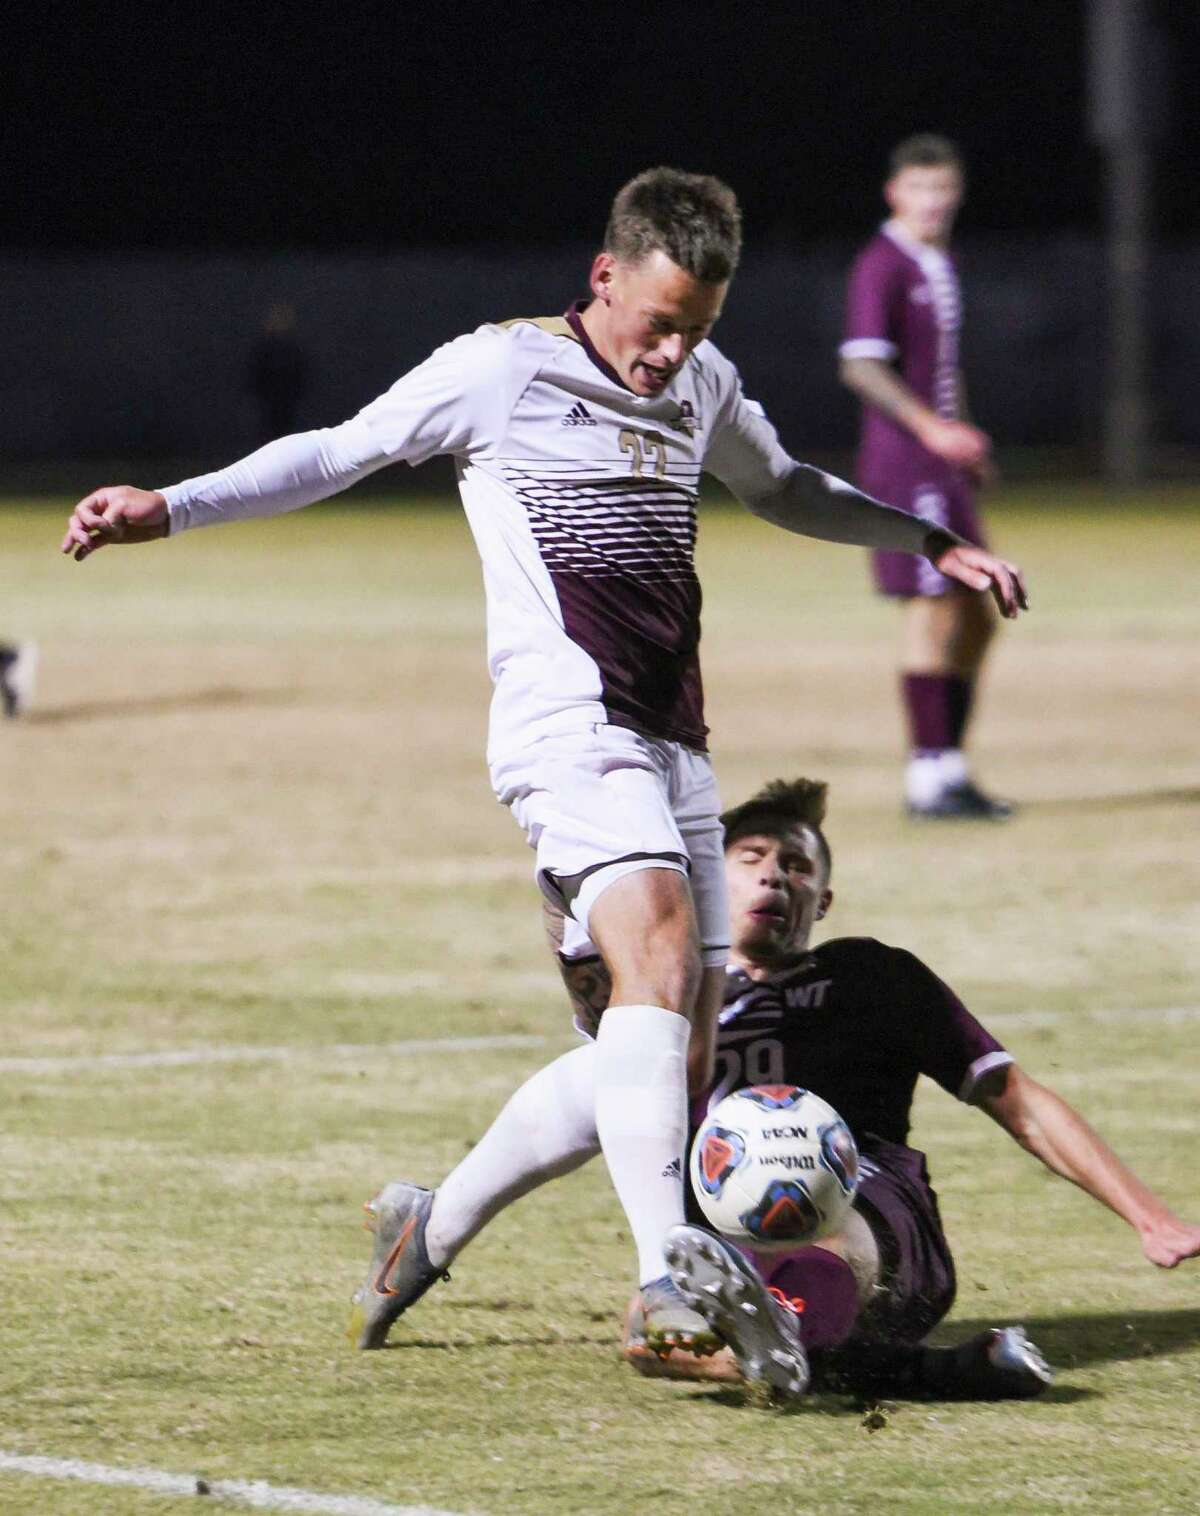 Former TAMIU midfielder Ruben Nielsen signed a professional contract with FC MAS Taborsko in the Czech Republic's Bohemian Football League.